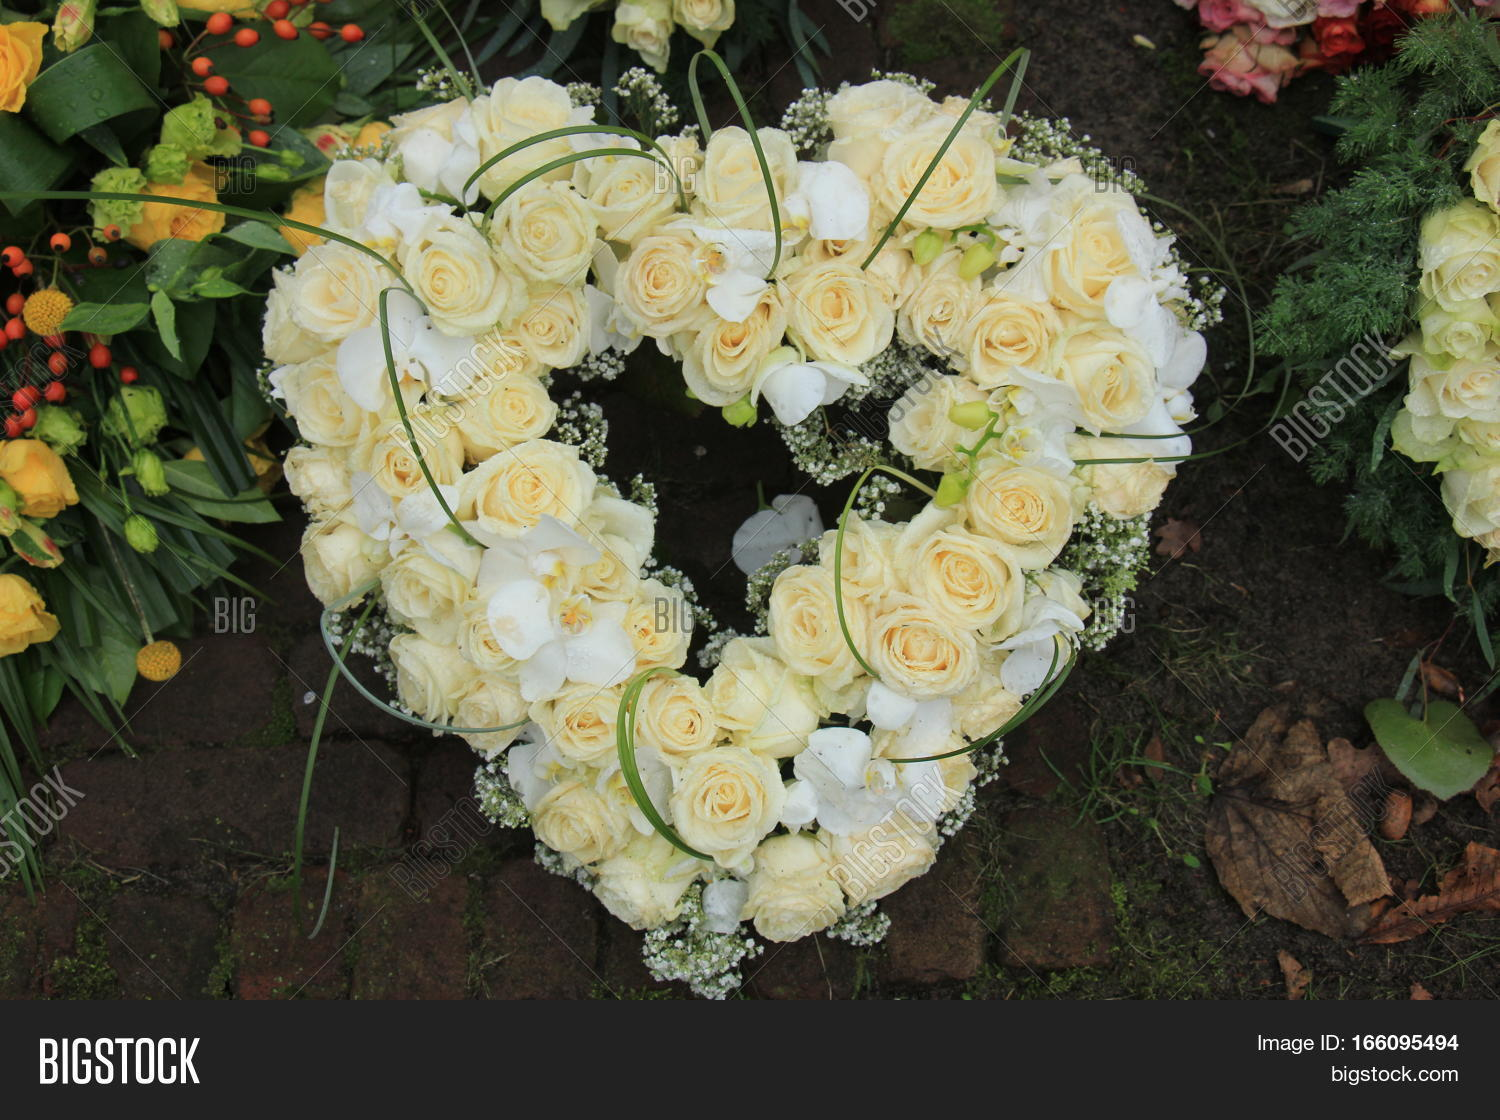 Heart shaped sympathy image photo free trial bigstock heart shaped sympathy or funeral flowers near a tree at a cemetery izmirmasajfo